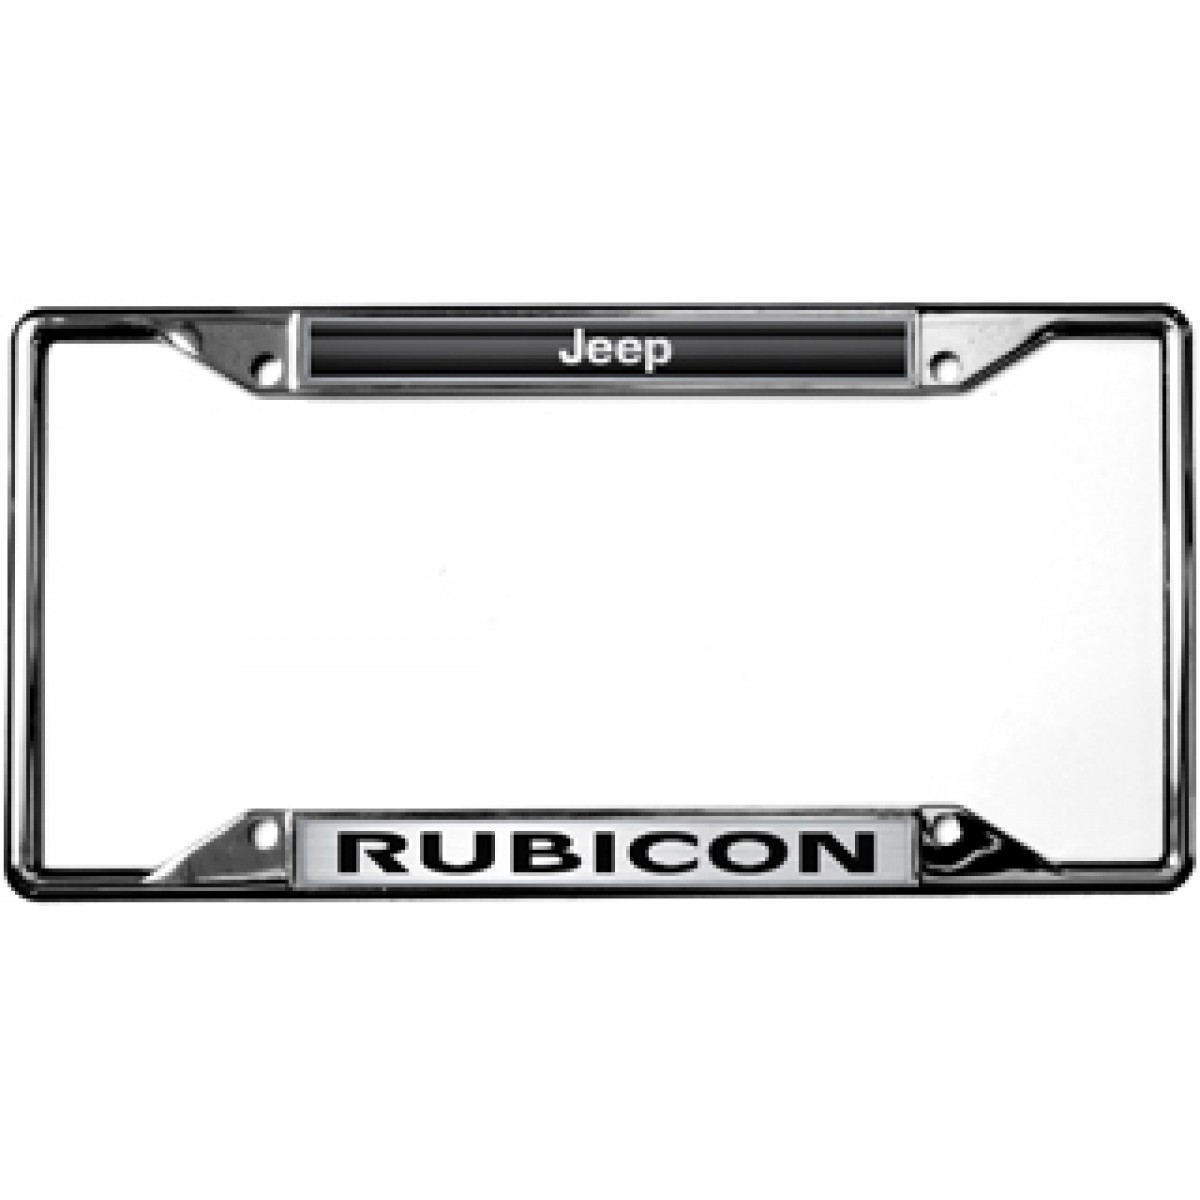 Jeep license plates frame